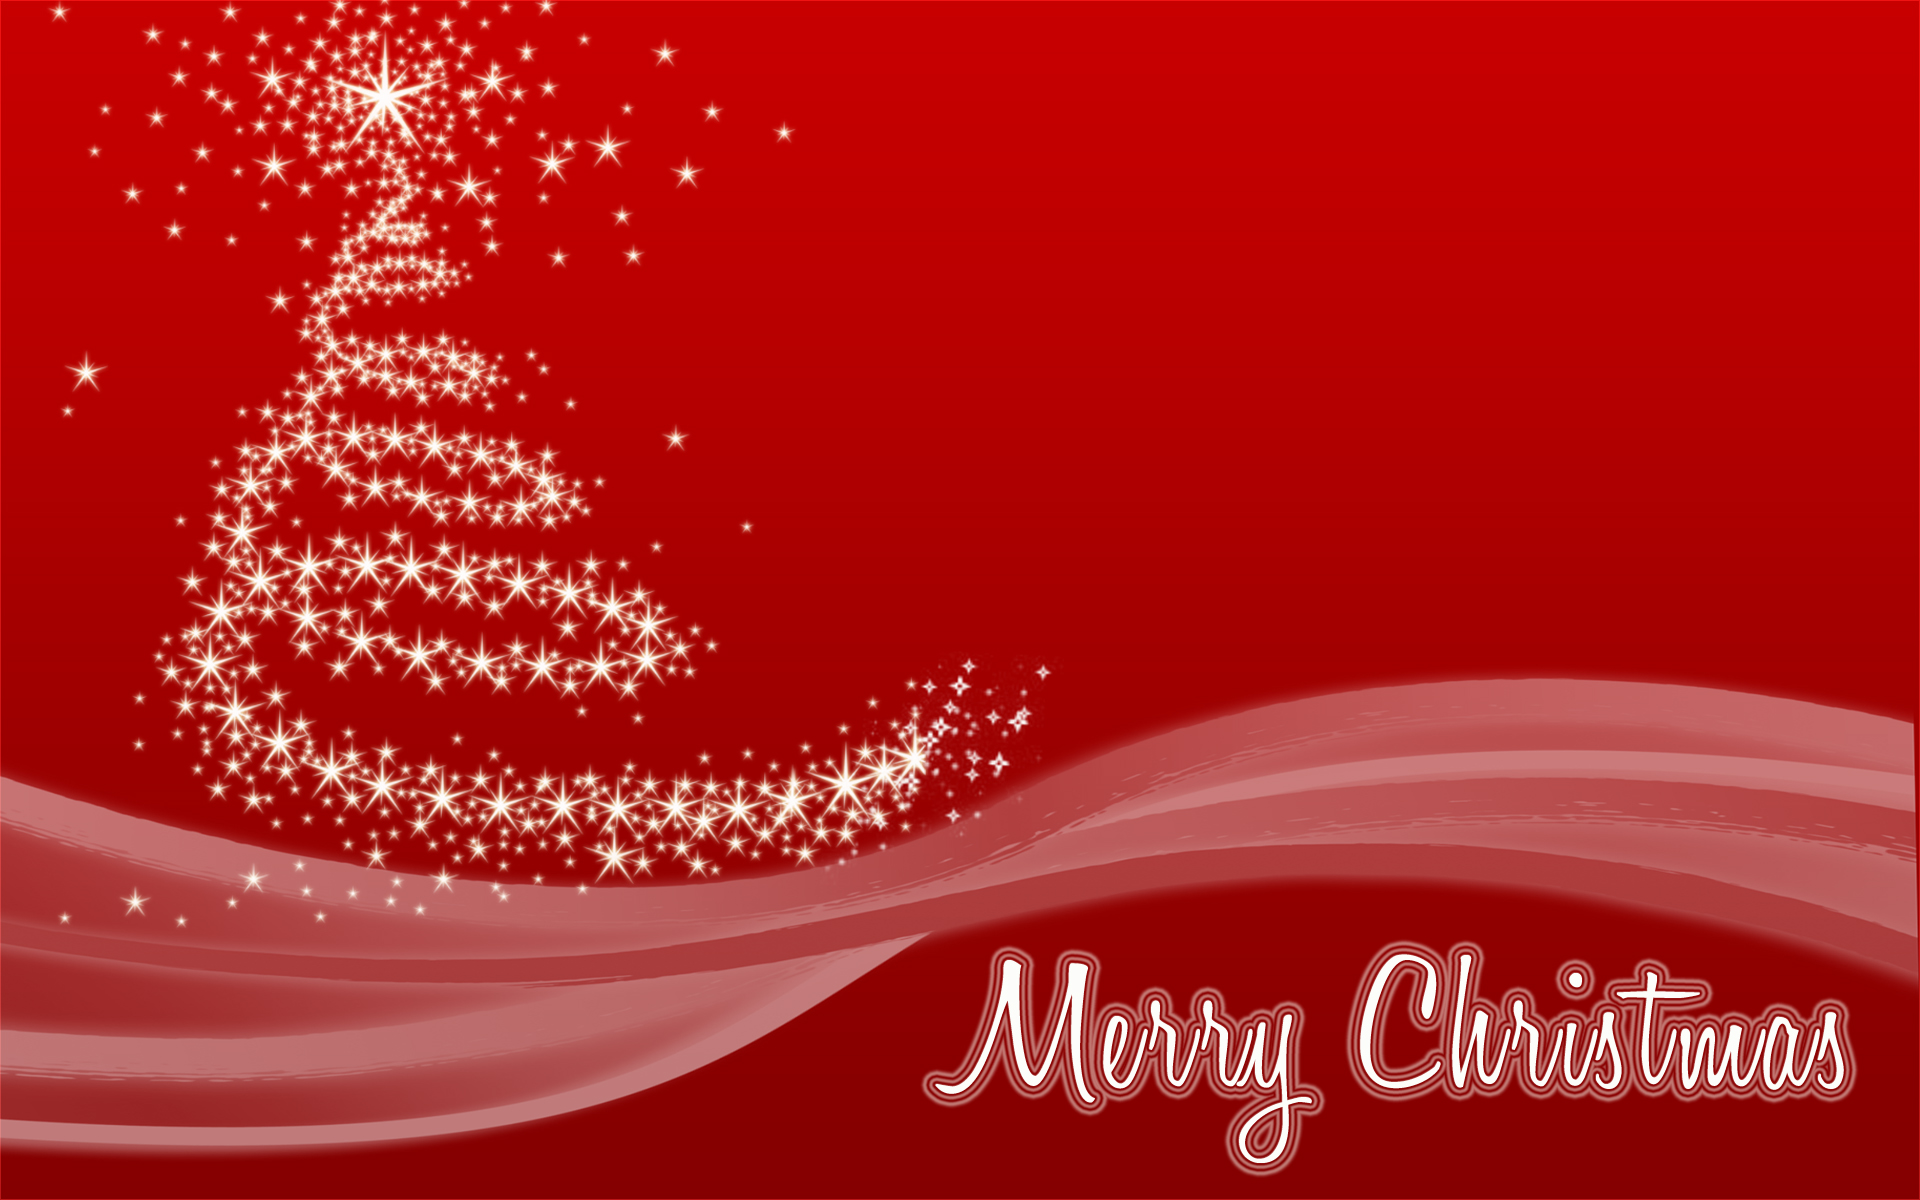 Merry christmas tree wallpaper free download pixelstalk net - Free christmas images for desktop wallpaper ...